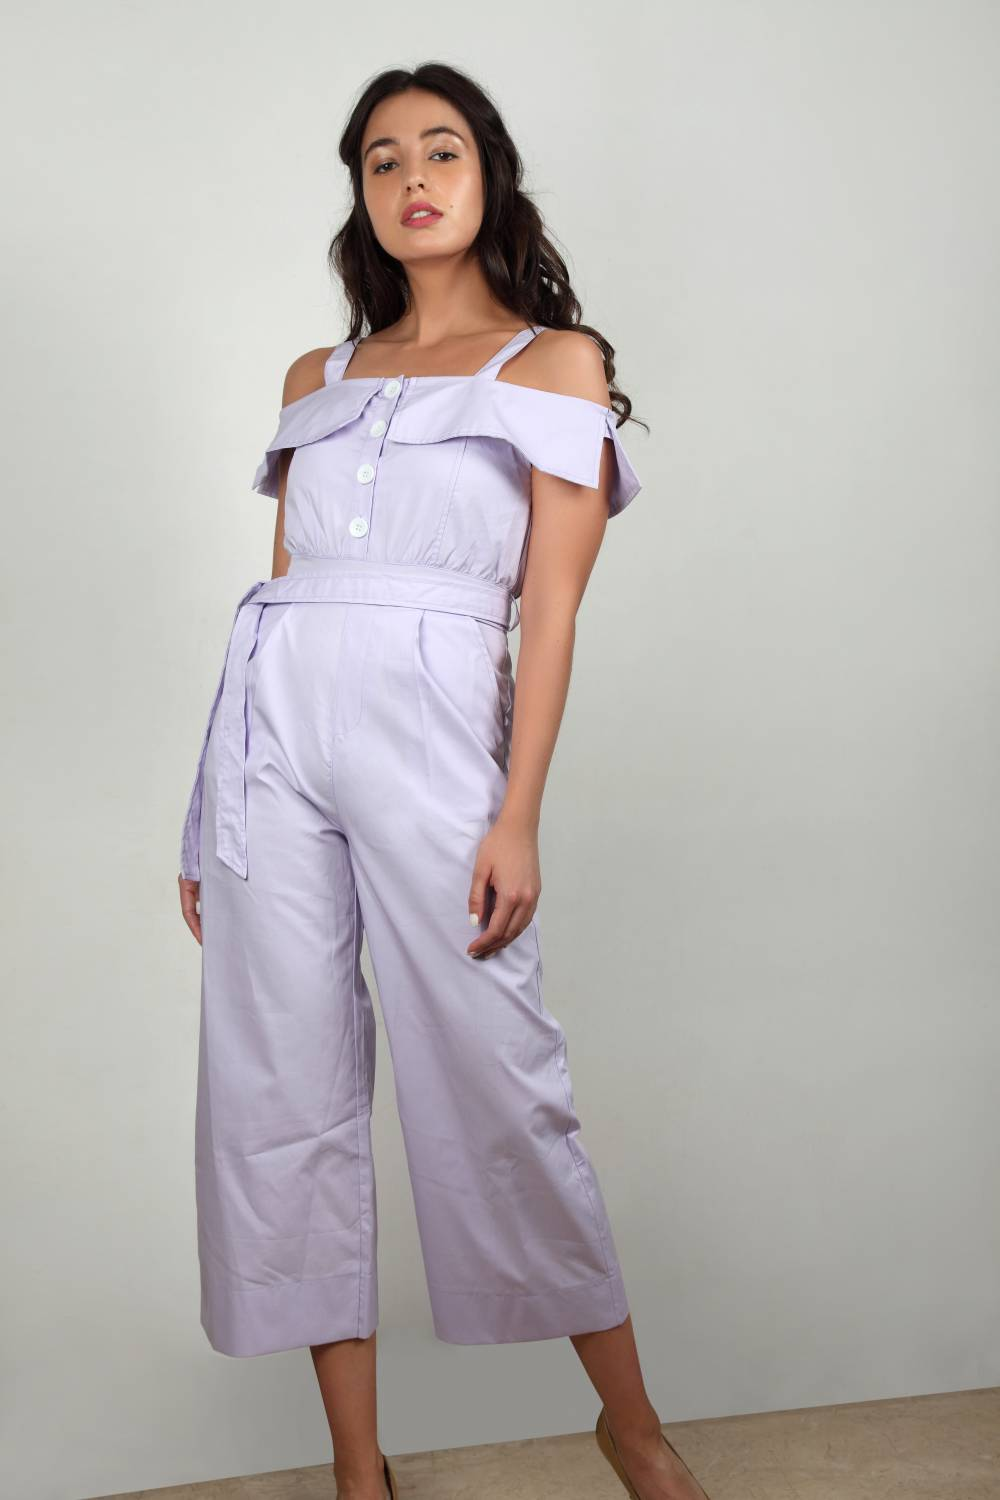 Say No More - Open Shoulder Jumpsuit